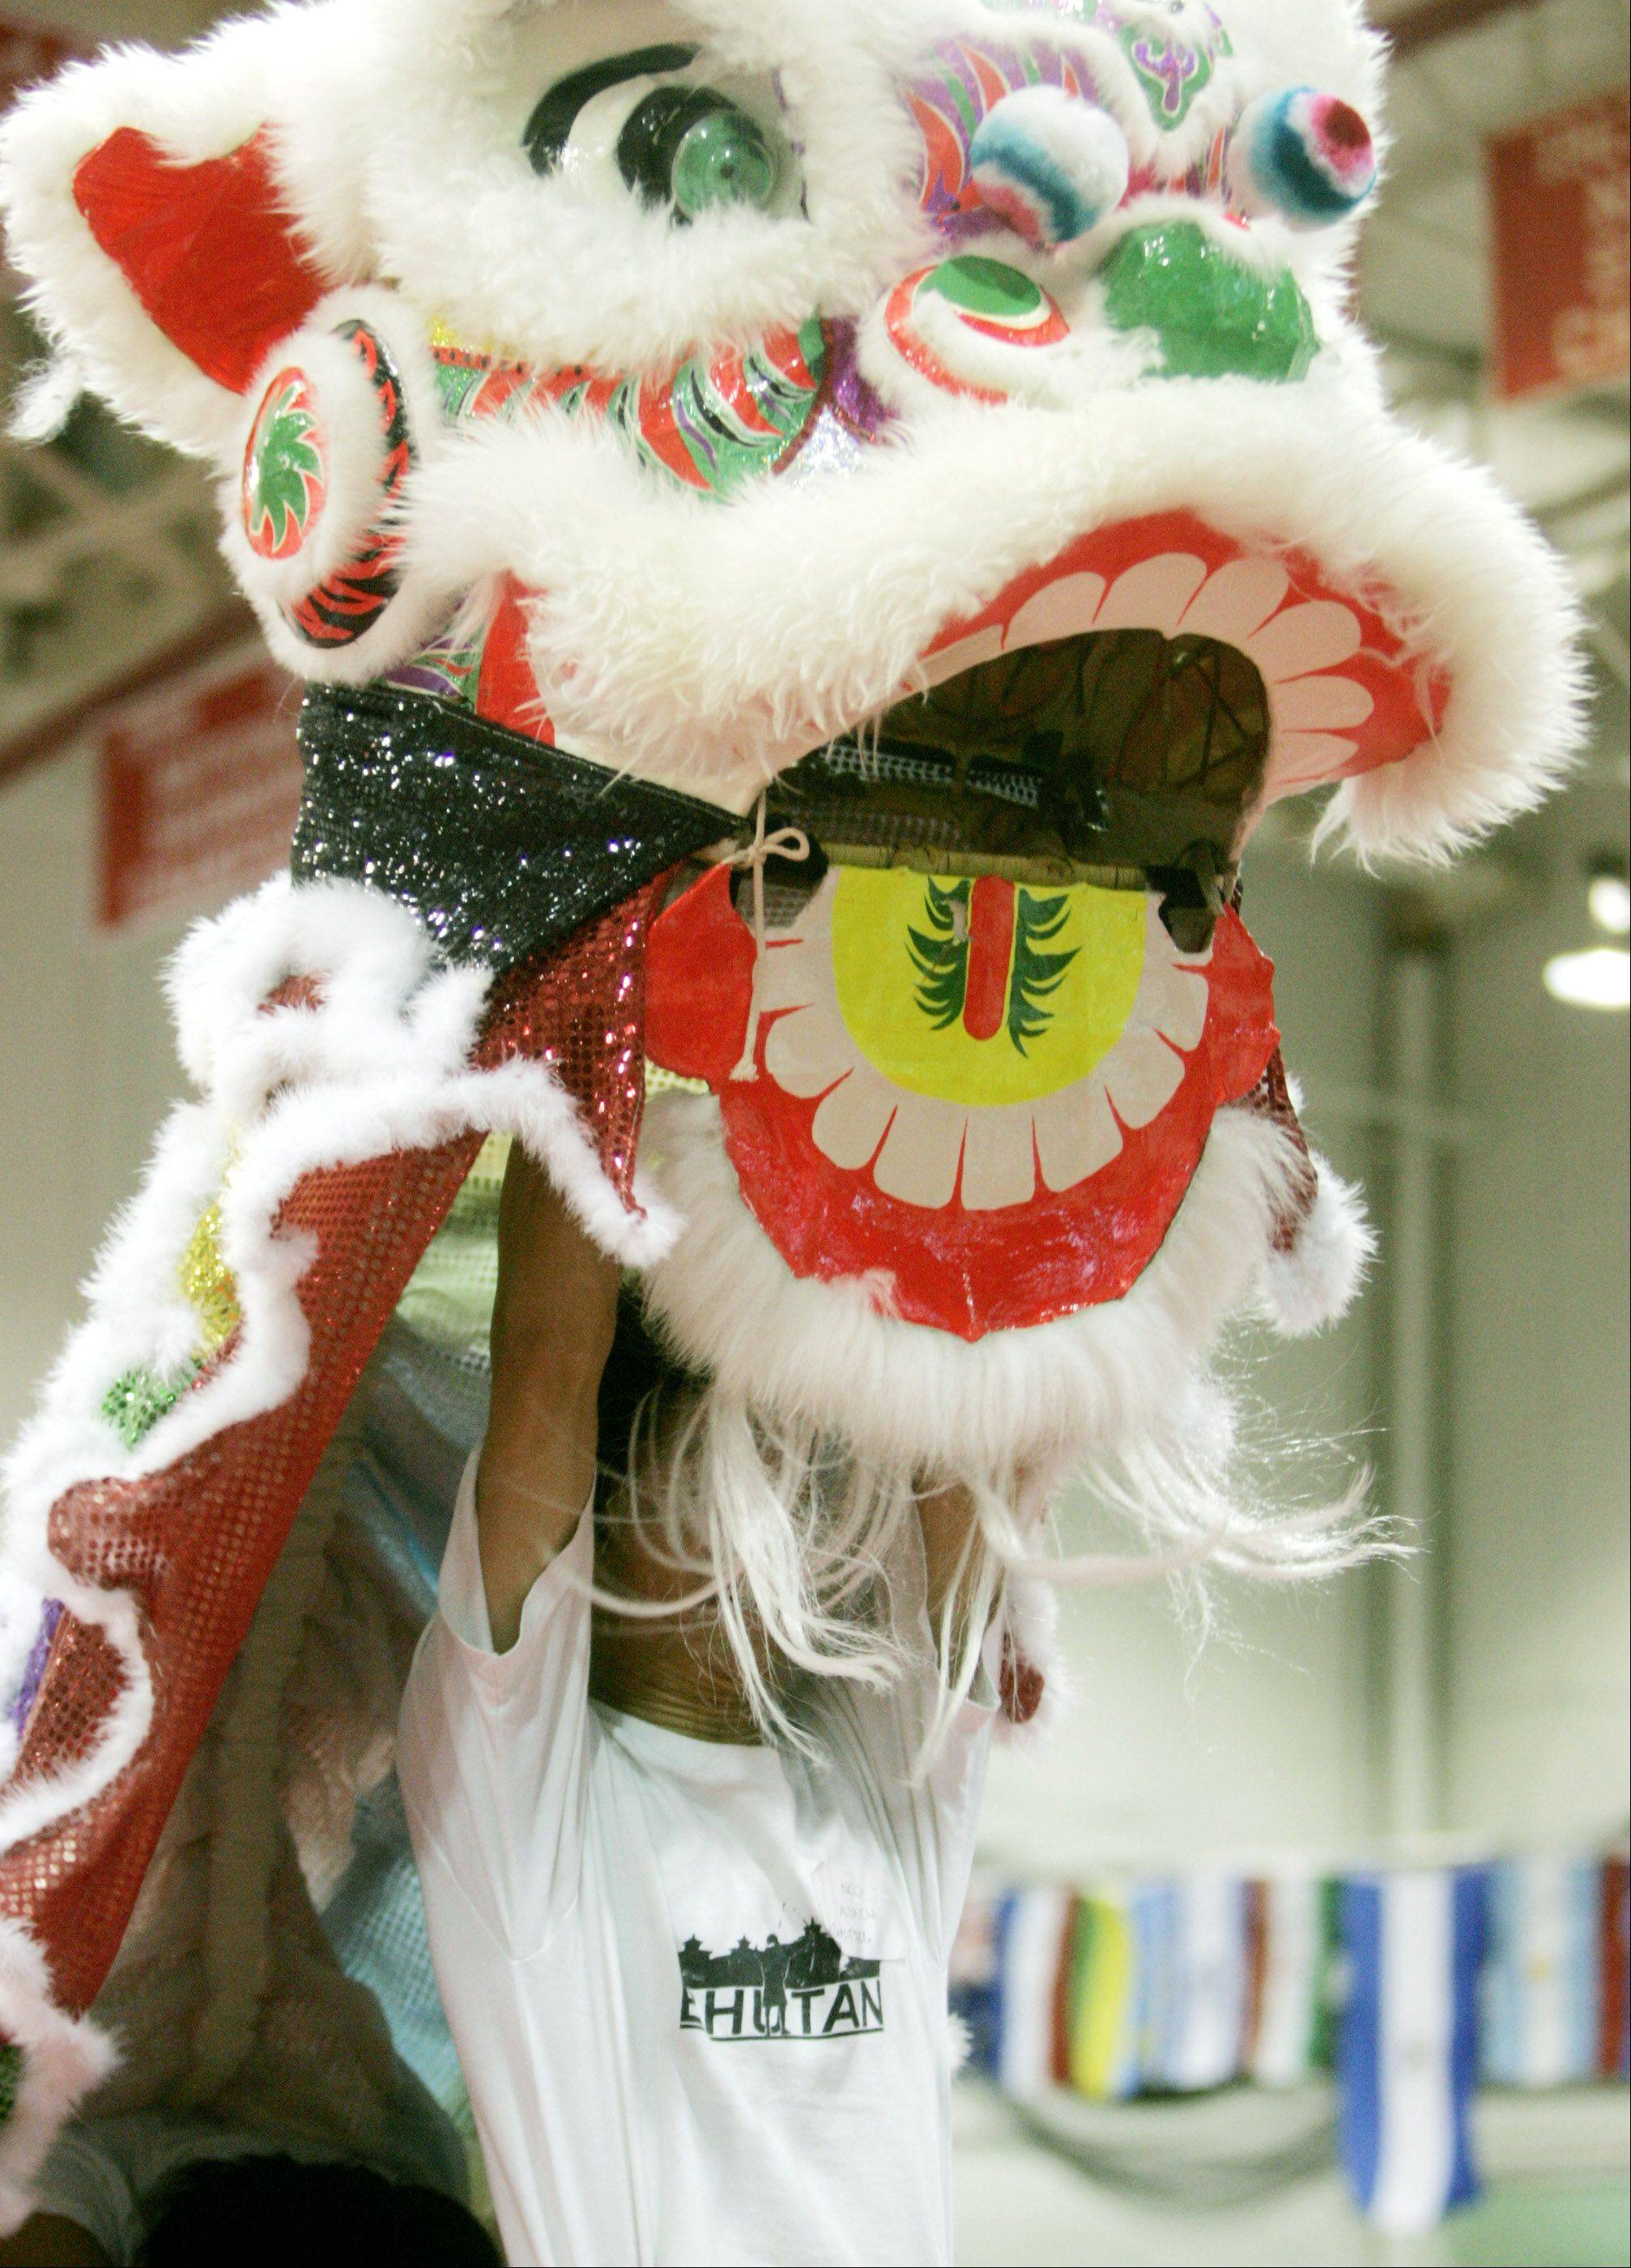 Visitors to North Central College's International Festival will get a close-up look at a variety of cultures.